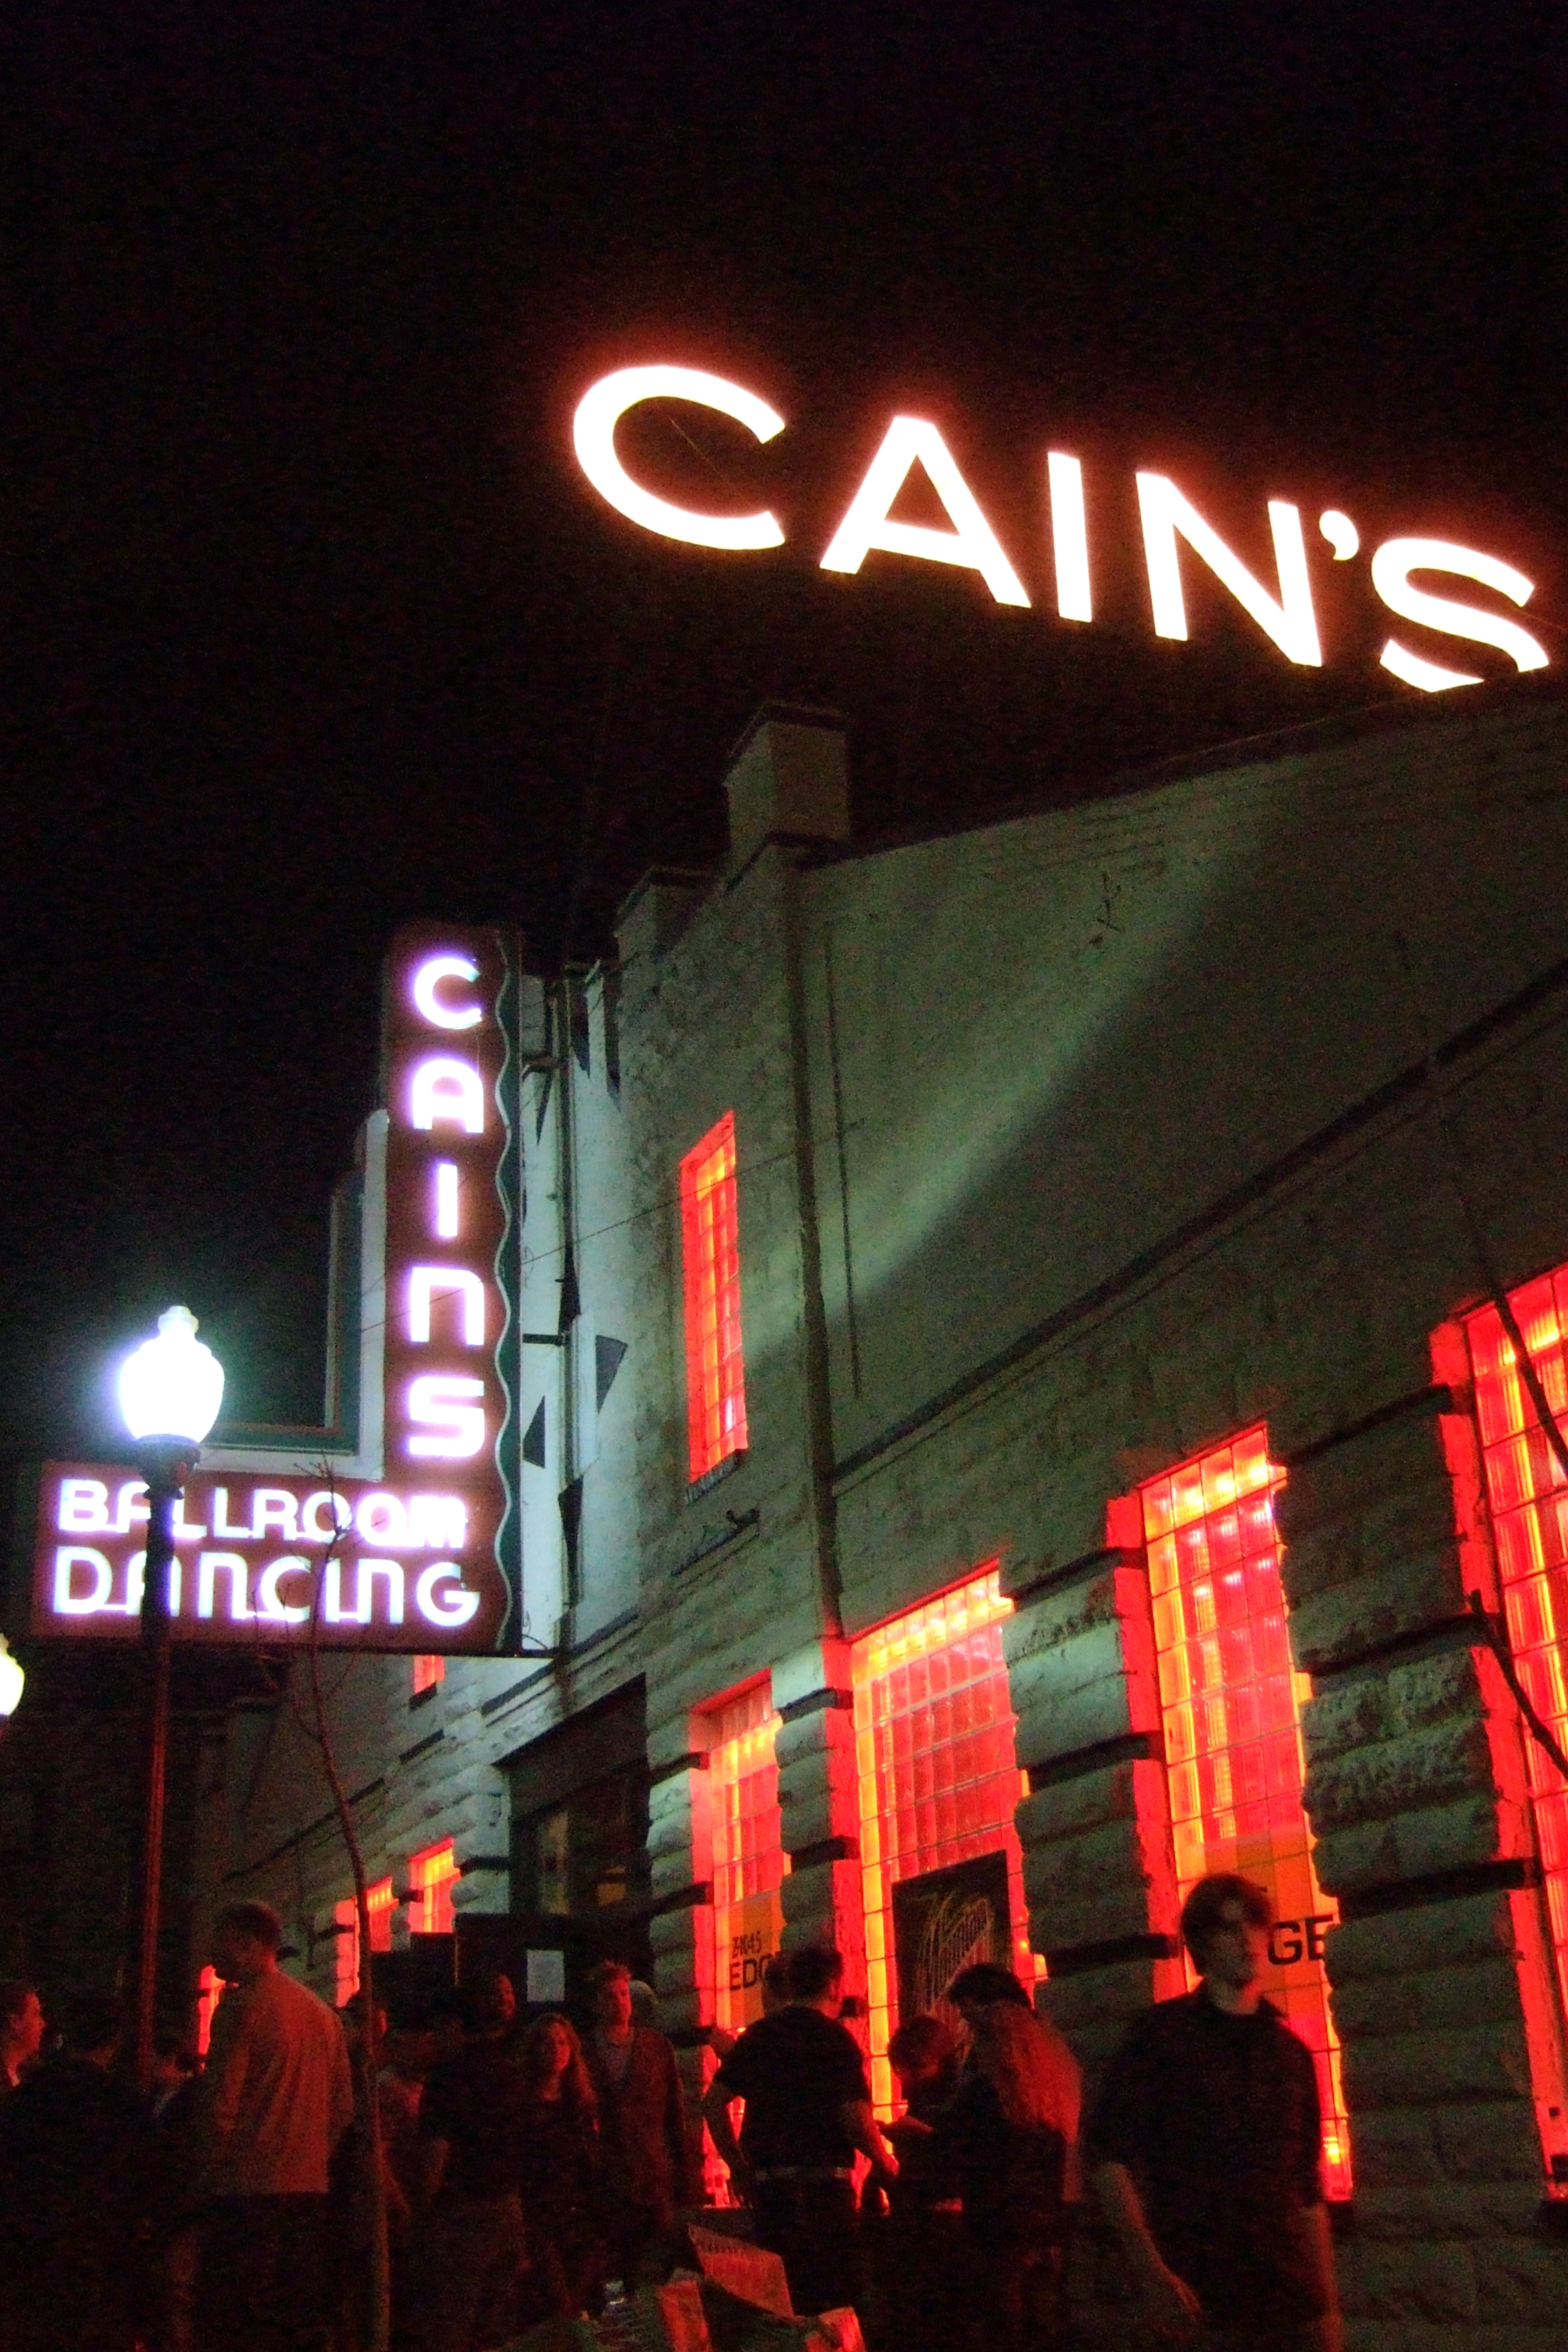 Cain's Ballroom was built in 1924 and was originally a garage for a car dealership. It became a dance and music venue beginning in the 1930s. It was resurrected in the 1970s, becoming solely a music venue.